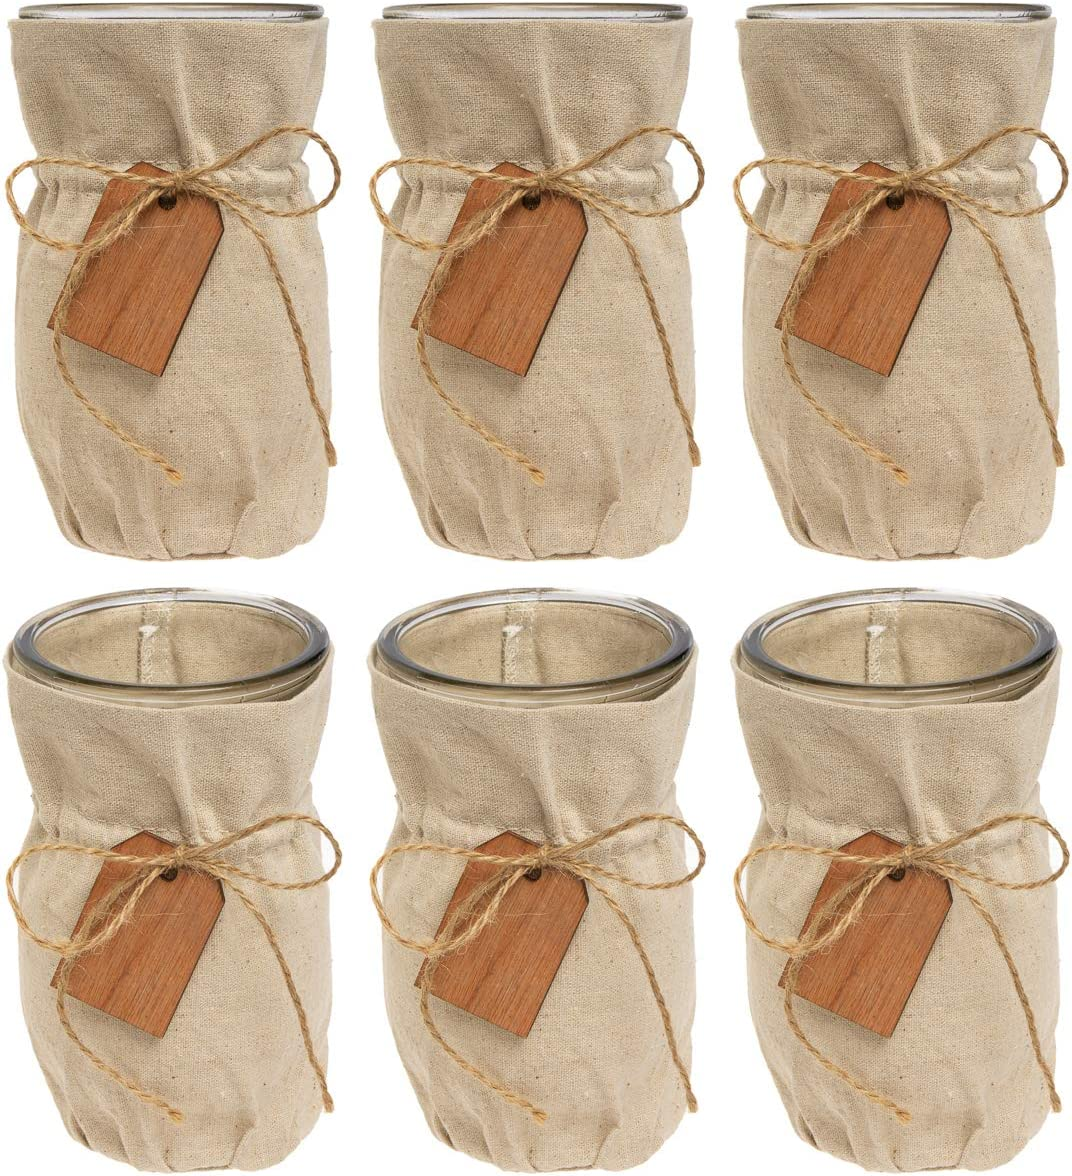 Syndicate Sales 6 Pack 7 Glass Vase Set with Linen Jacket Vintage Home Decor Centerpiece for Flowers